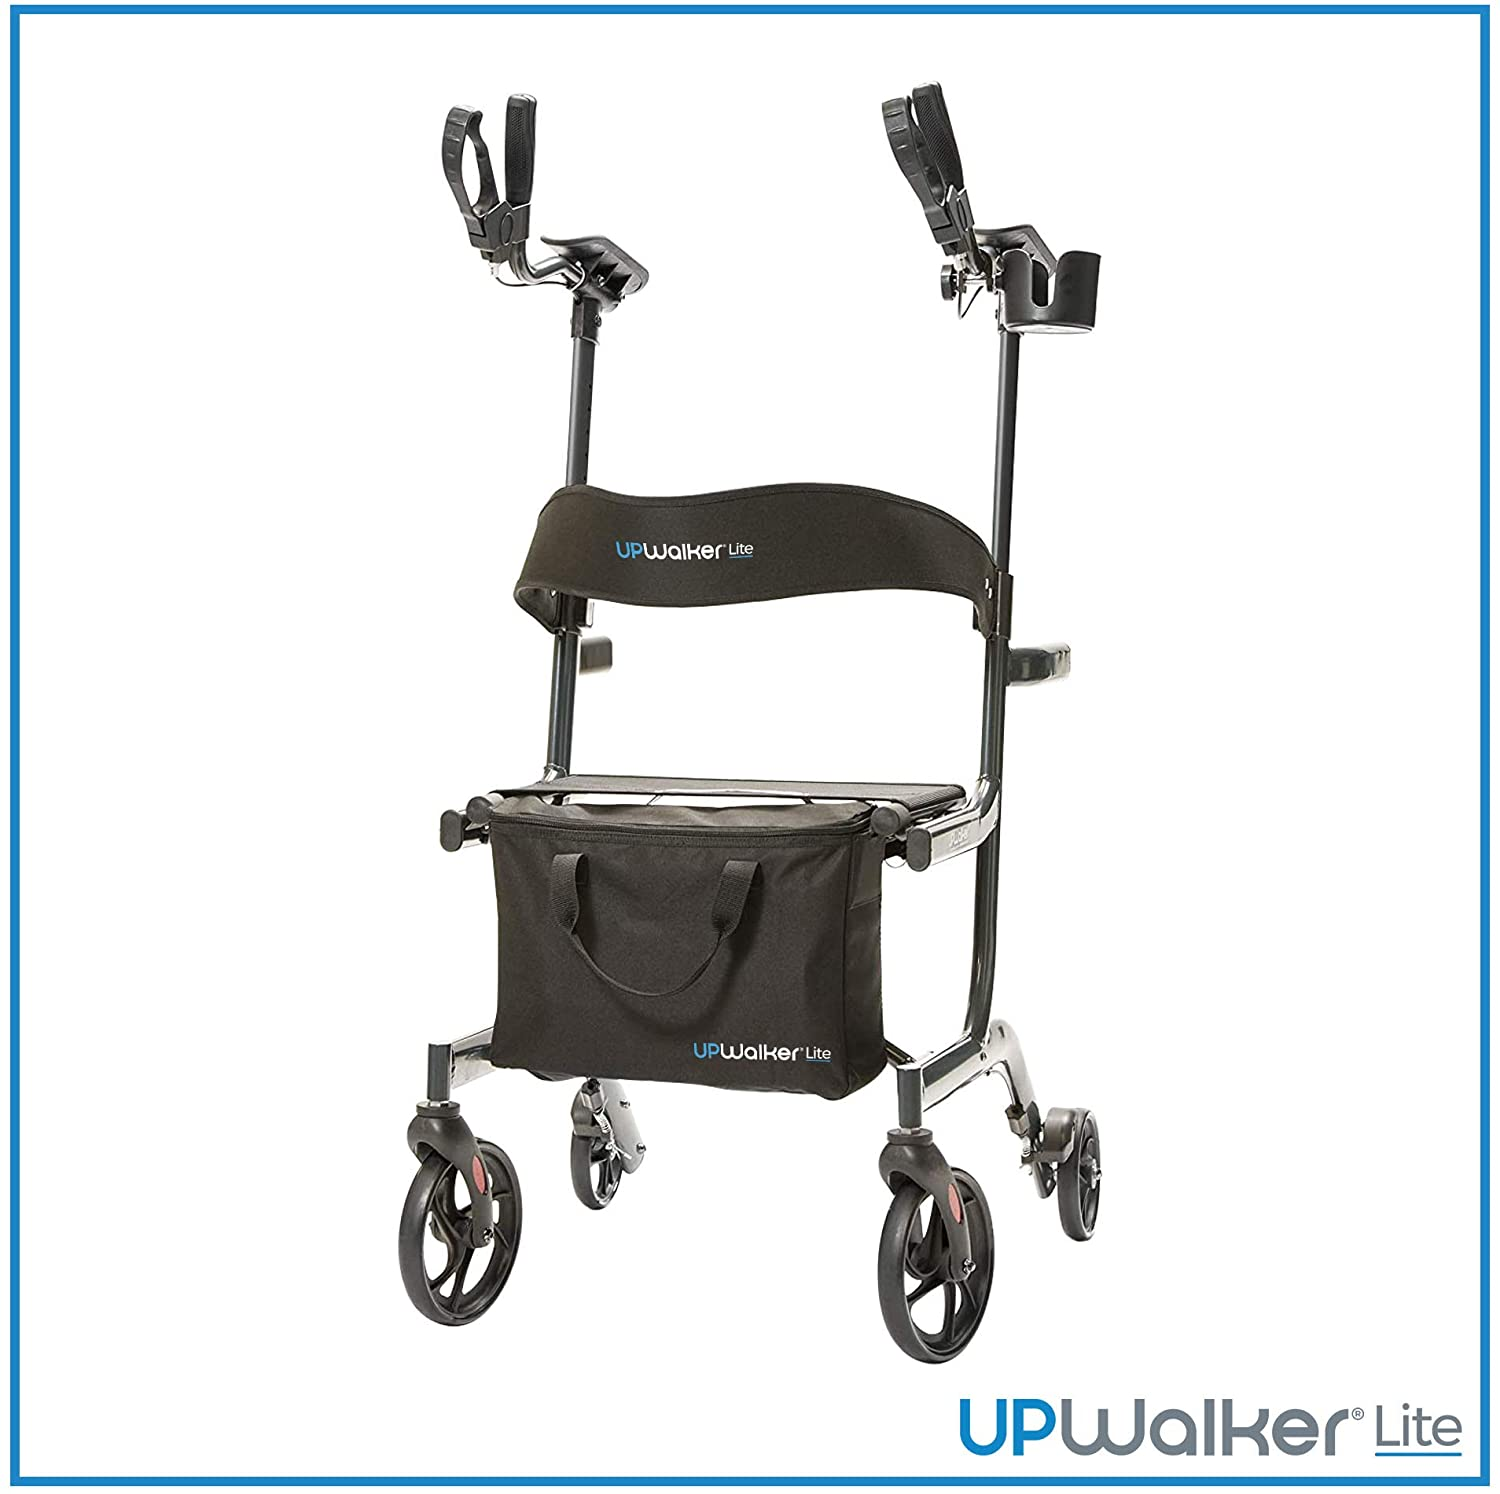 Review of UPWalker Lite Original Upright Walker